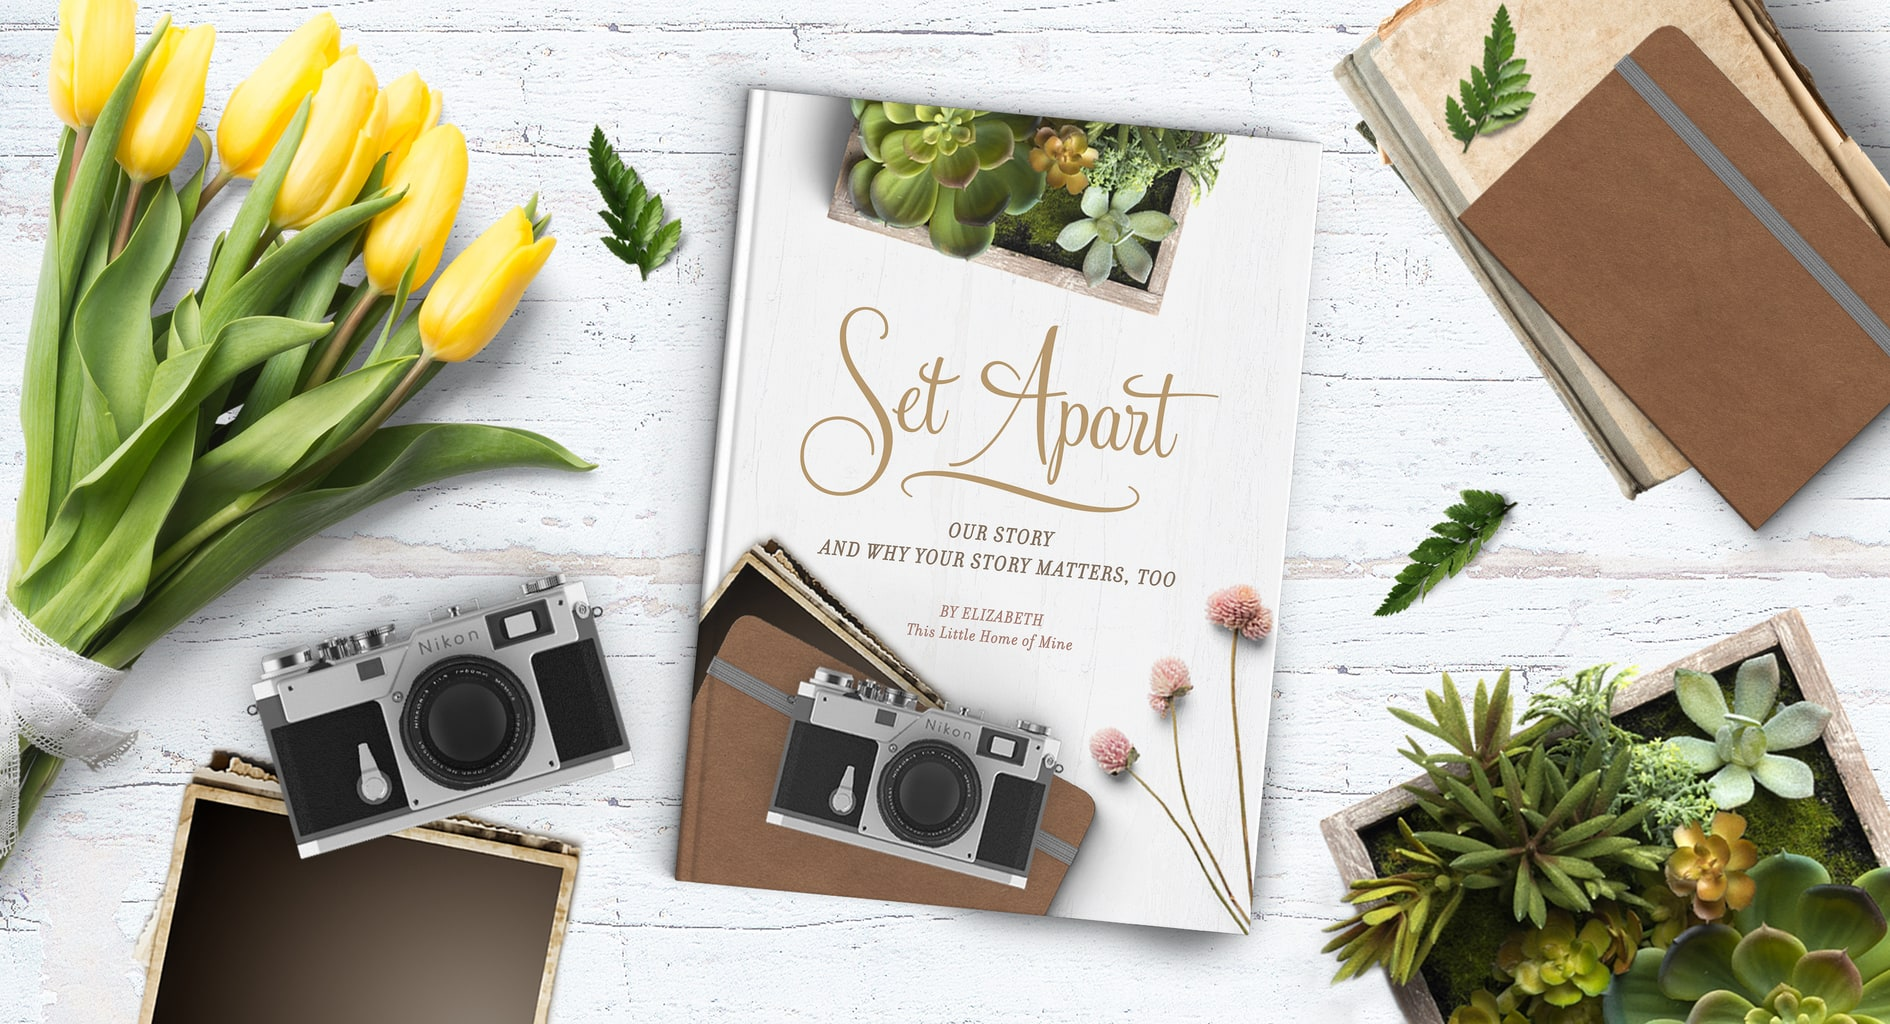 Set Apart: Our Story by This Little Home of Mine